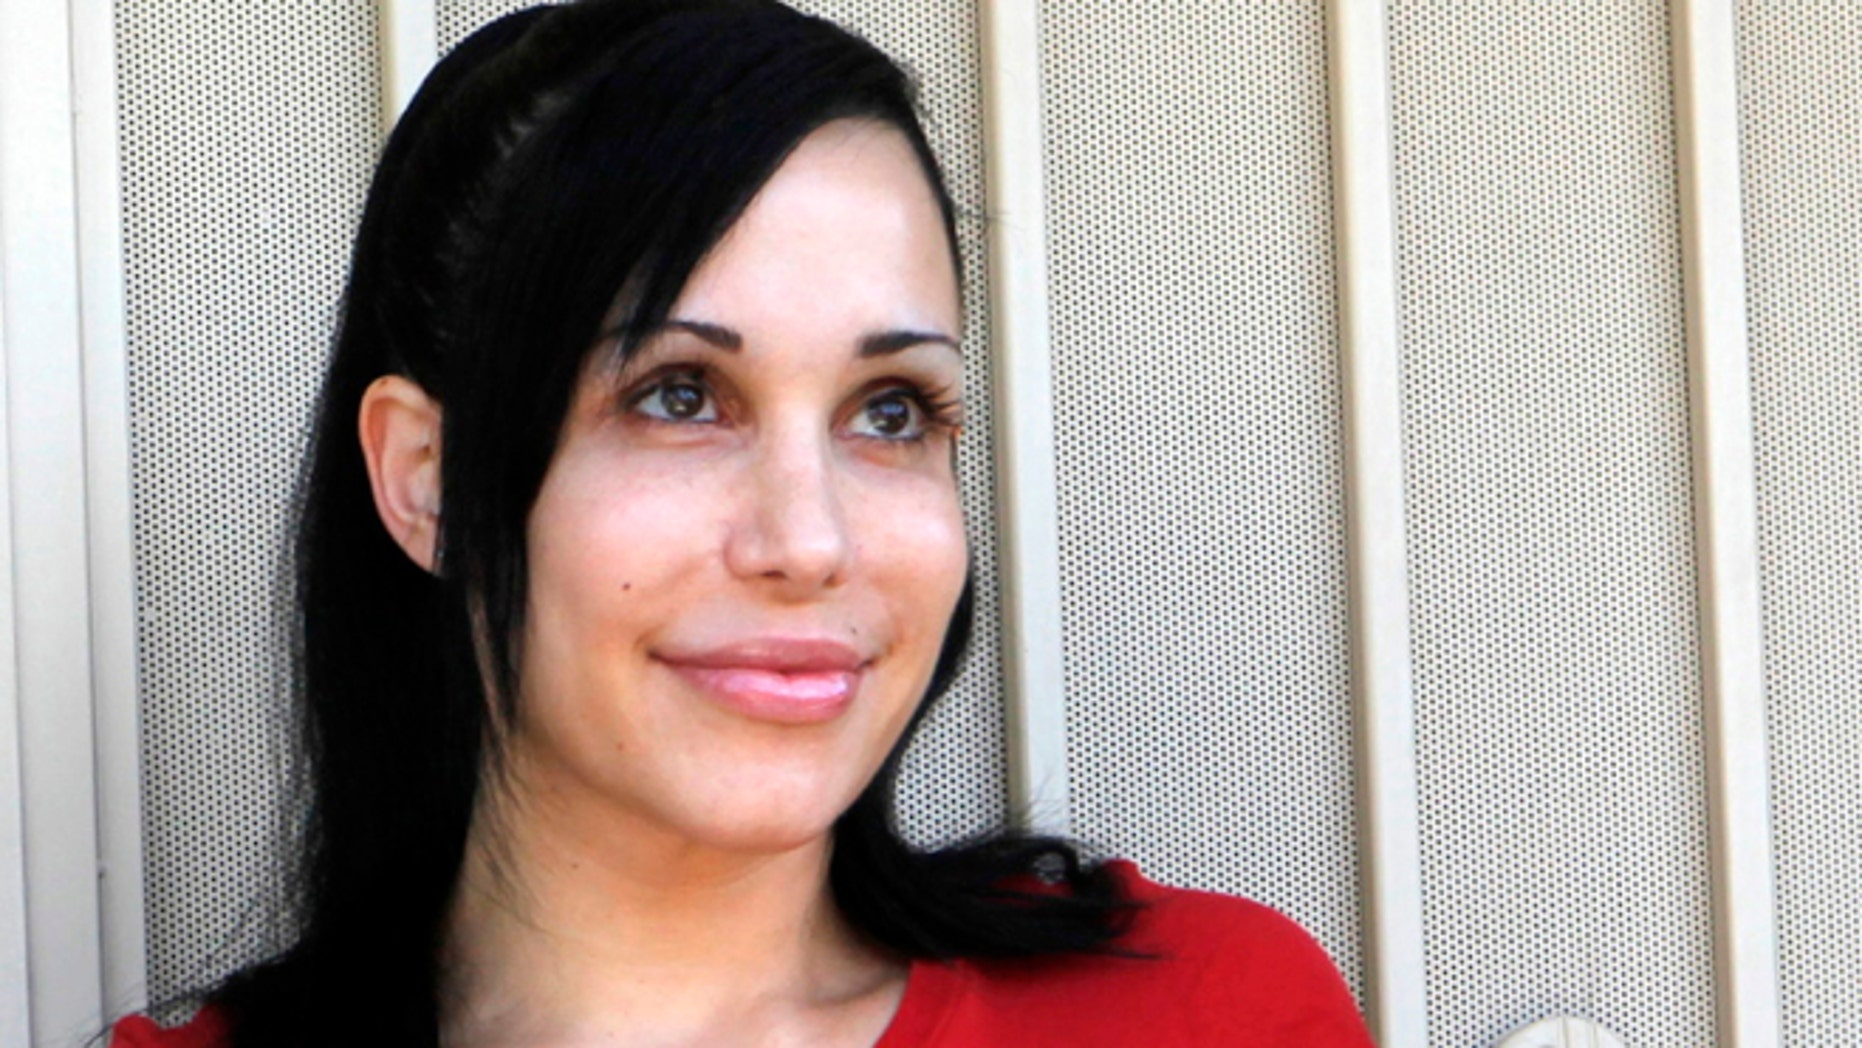 May 19, 2010: Nadya Suleman stands outside her home in La Habra, Calif.